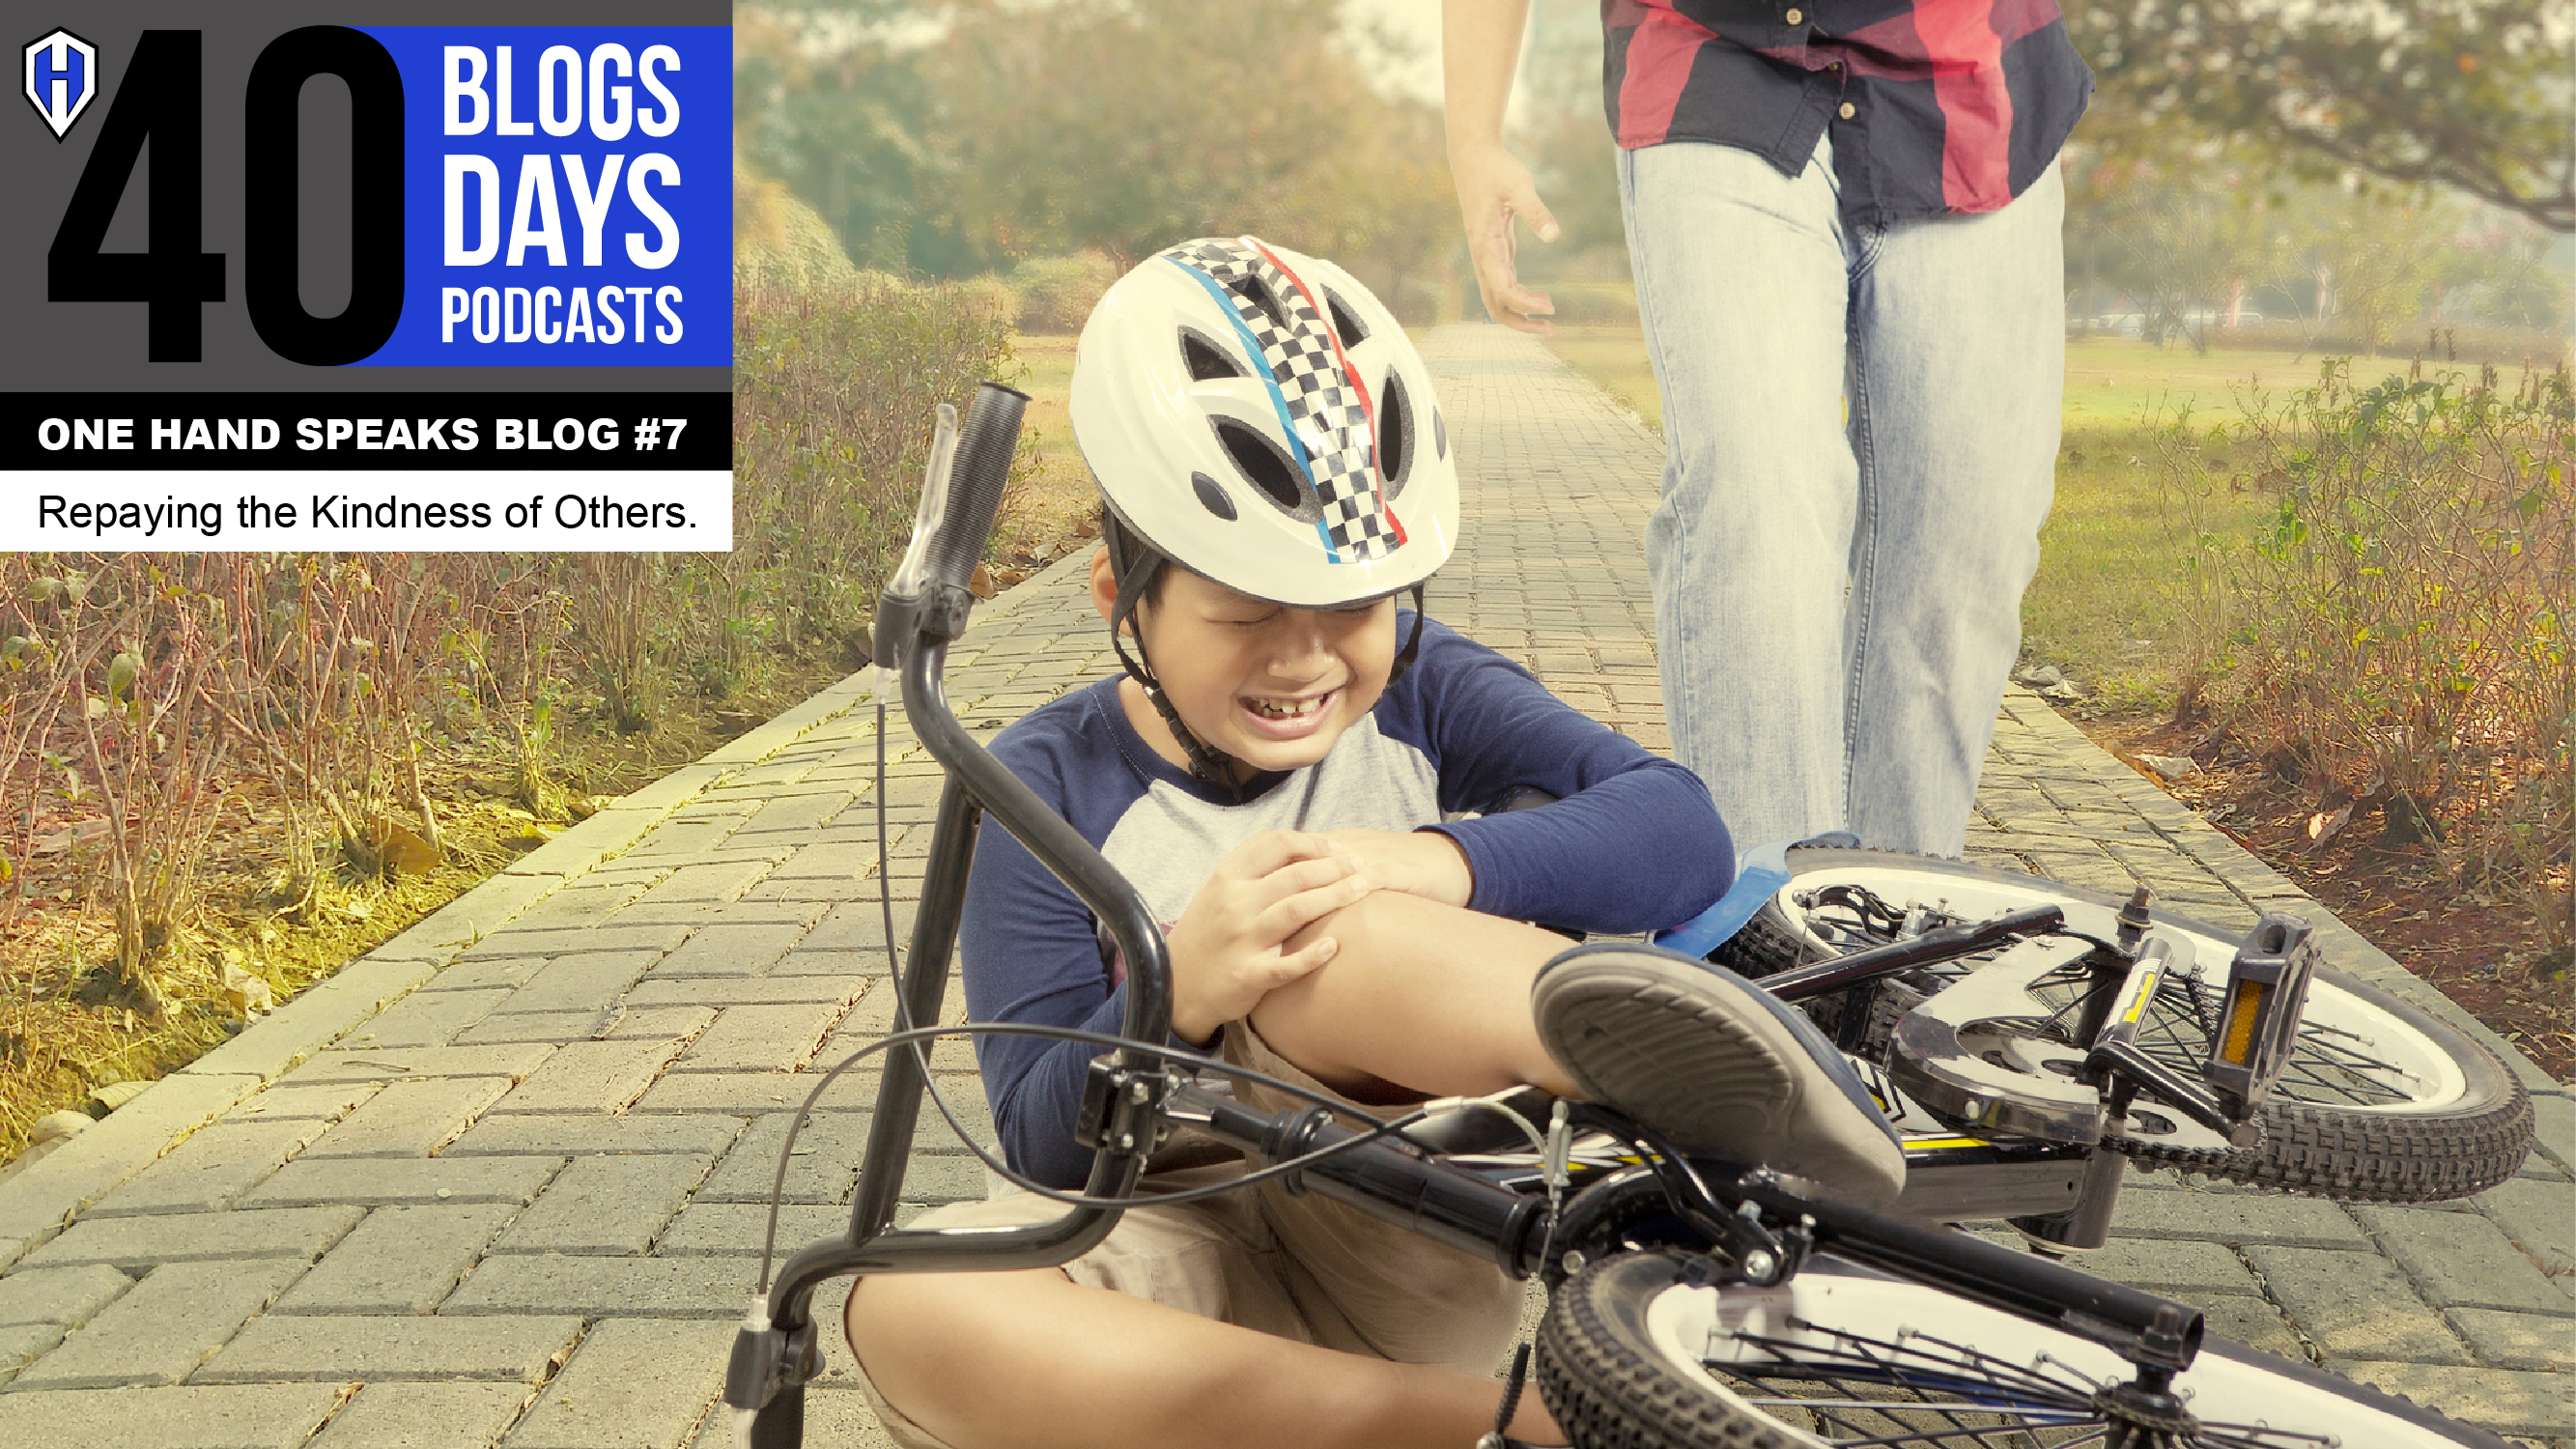 An image of a young boy who fell of his bike and was crying. A man in the background in coming to help.